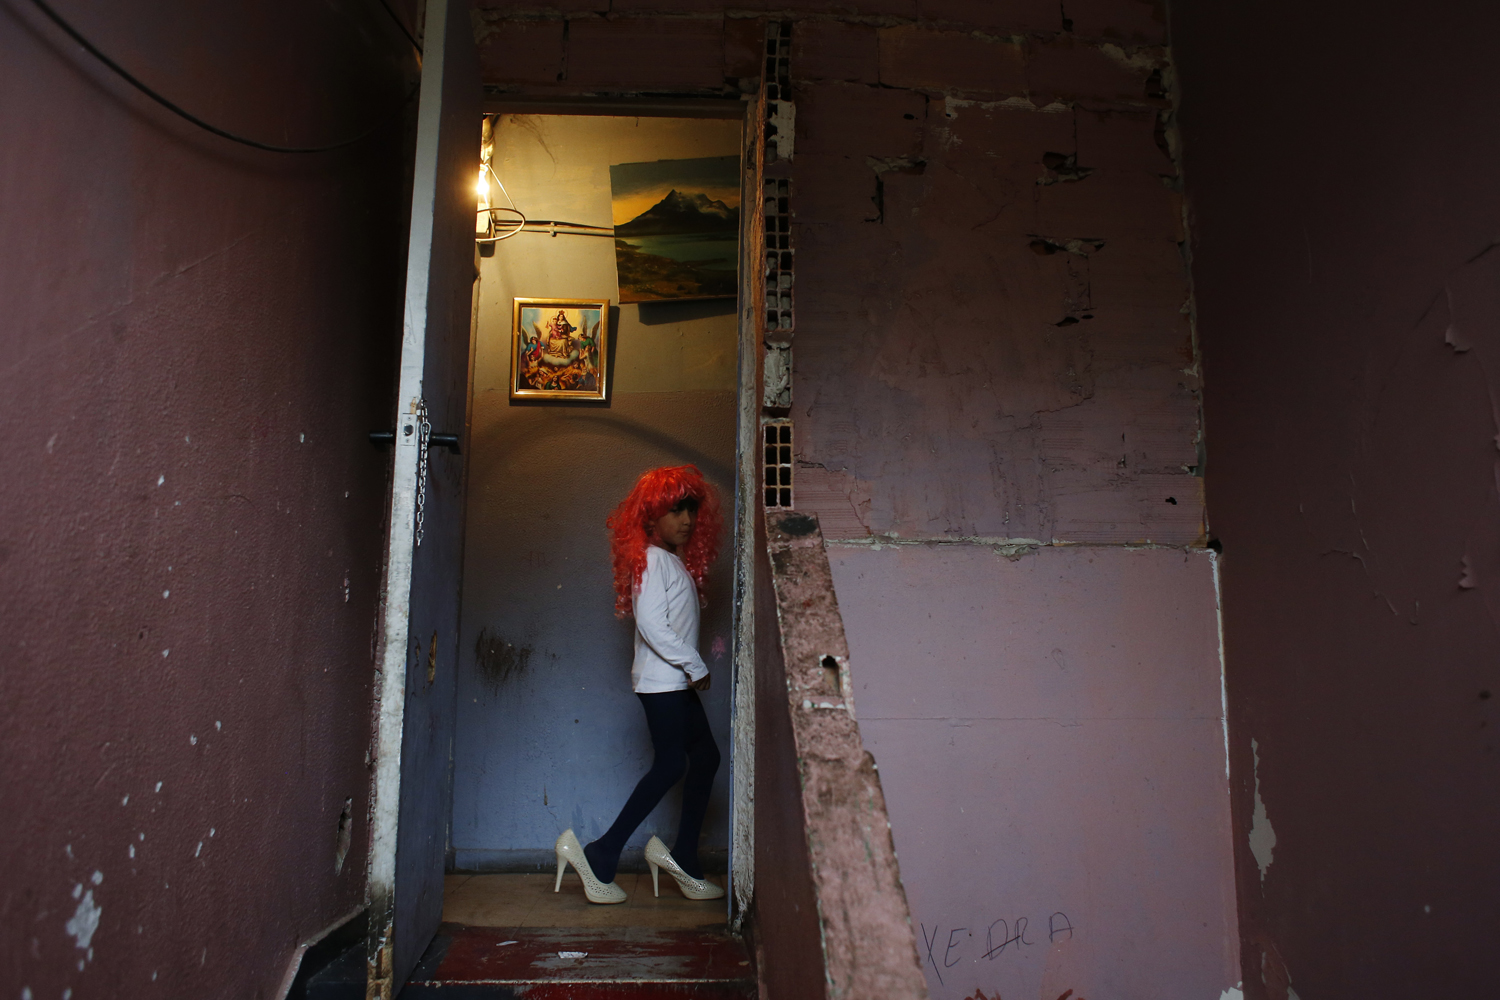 Nov. 7, 2013. Antonio Acuna, 7, plays dress up with a wig and high heel shoes at the factory where he lives with his family after the postponement of the demolition of their homes in Madrid.